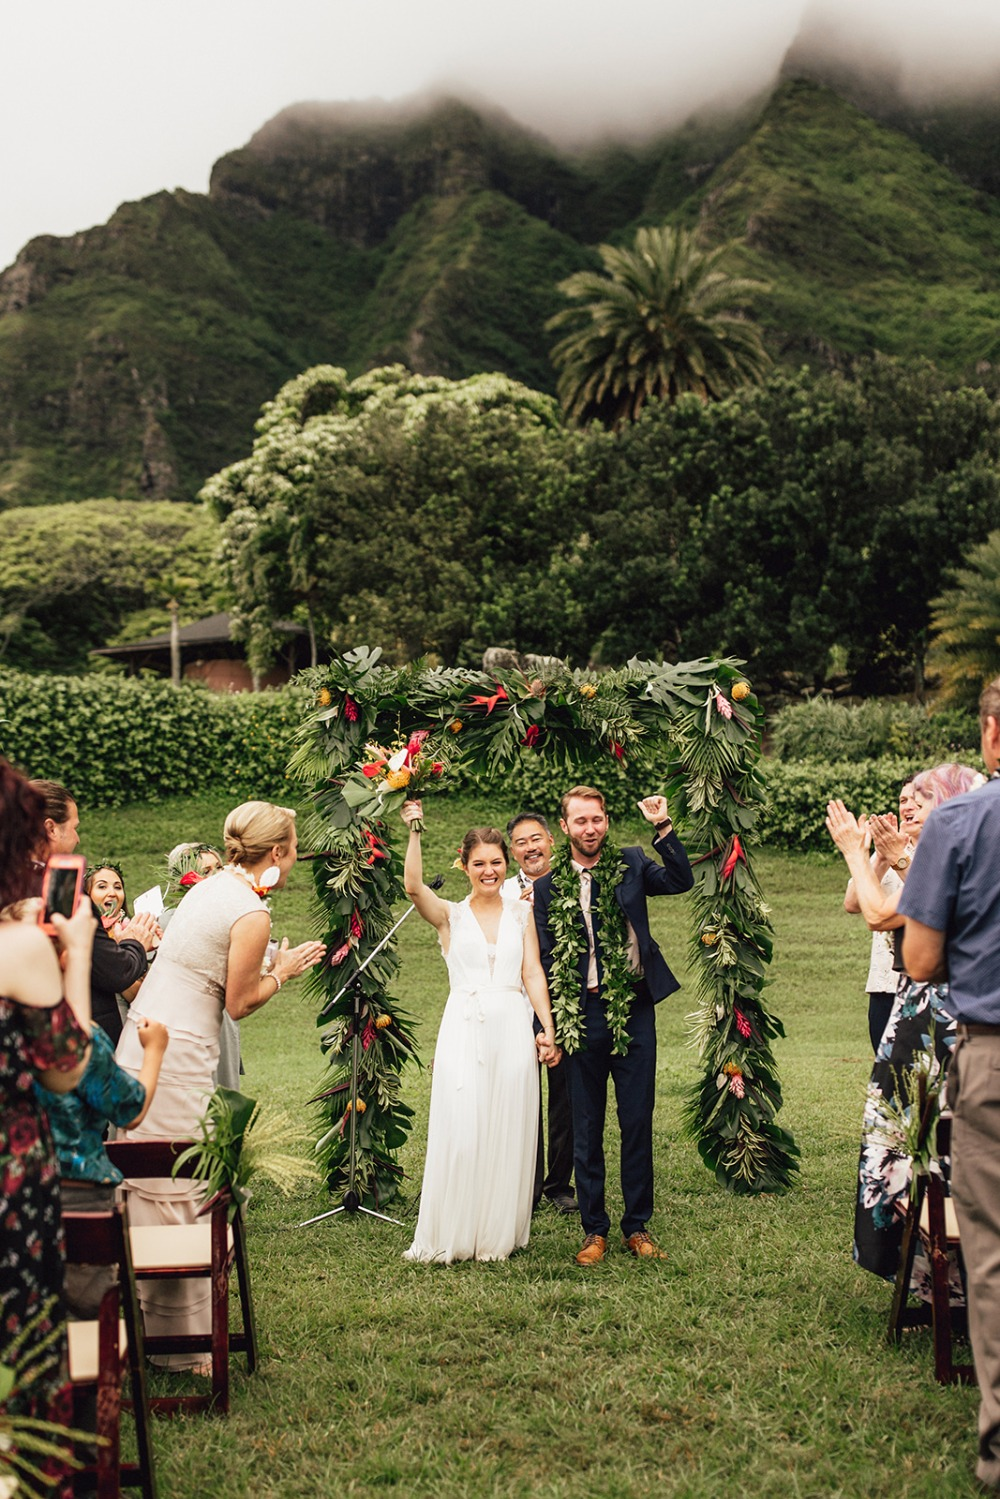 Tropical wedding in Hawaii